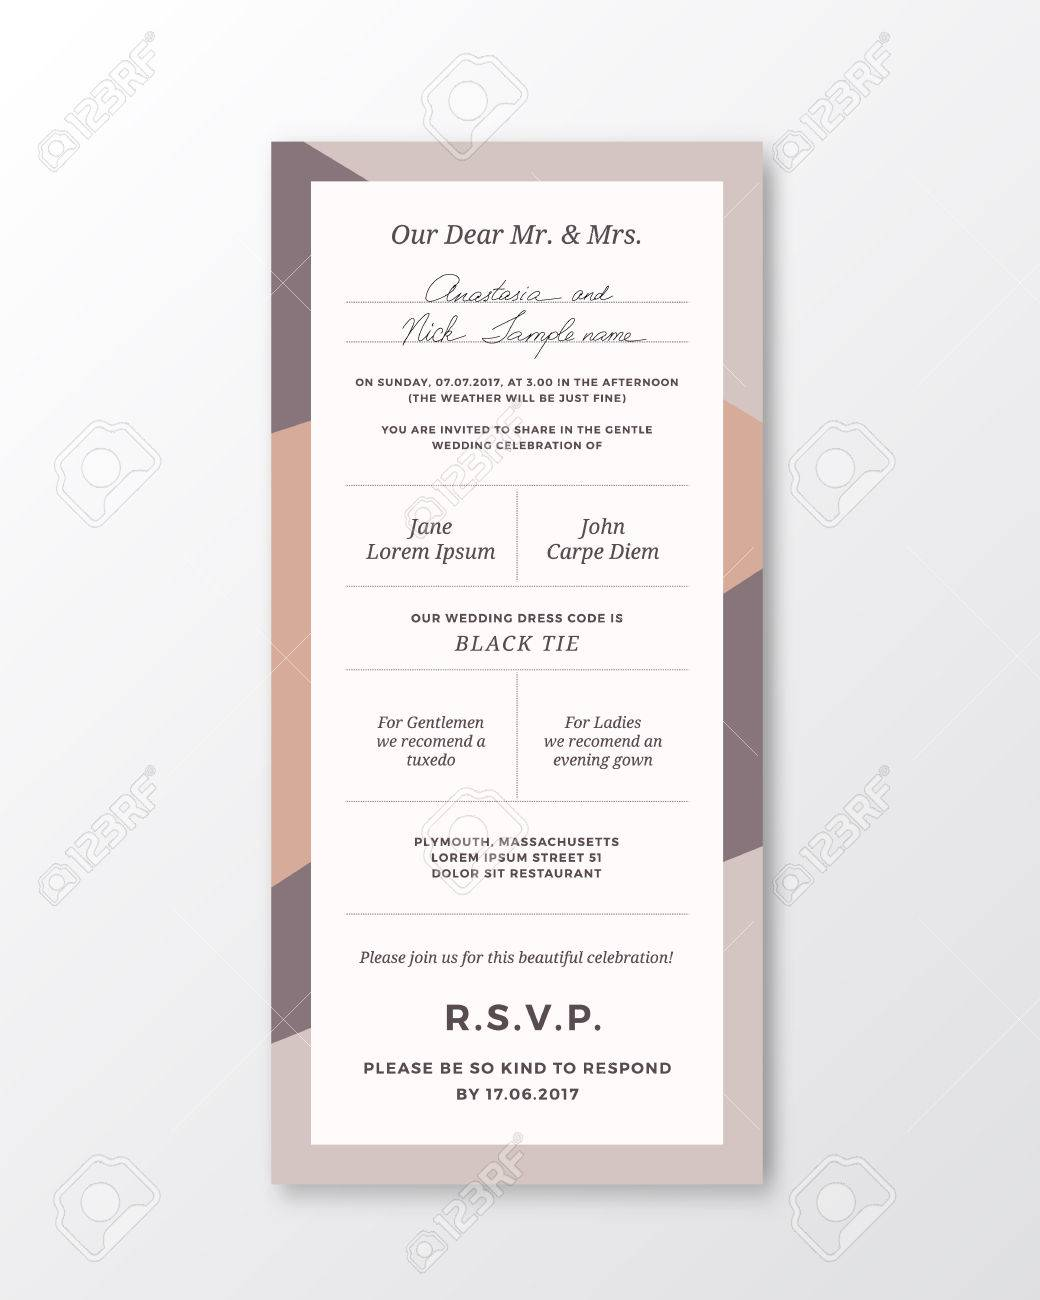 Vector wedding invitation template modern typography and pastel vector wedding invitation template modern typography and pastel colors classy design card with soft stopboris Images